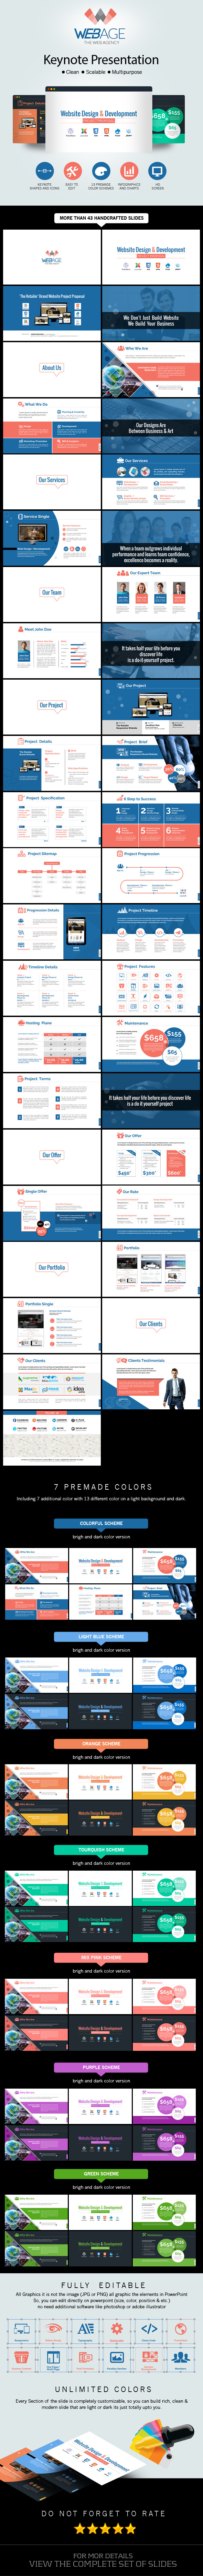 GraphicRiver Web Design & Development Keynote Presentation 9522377